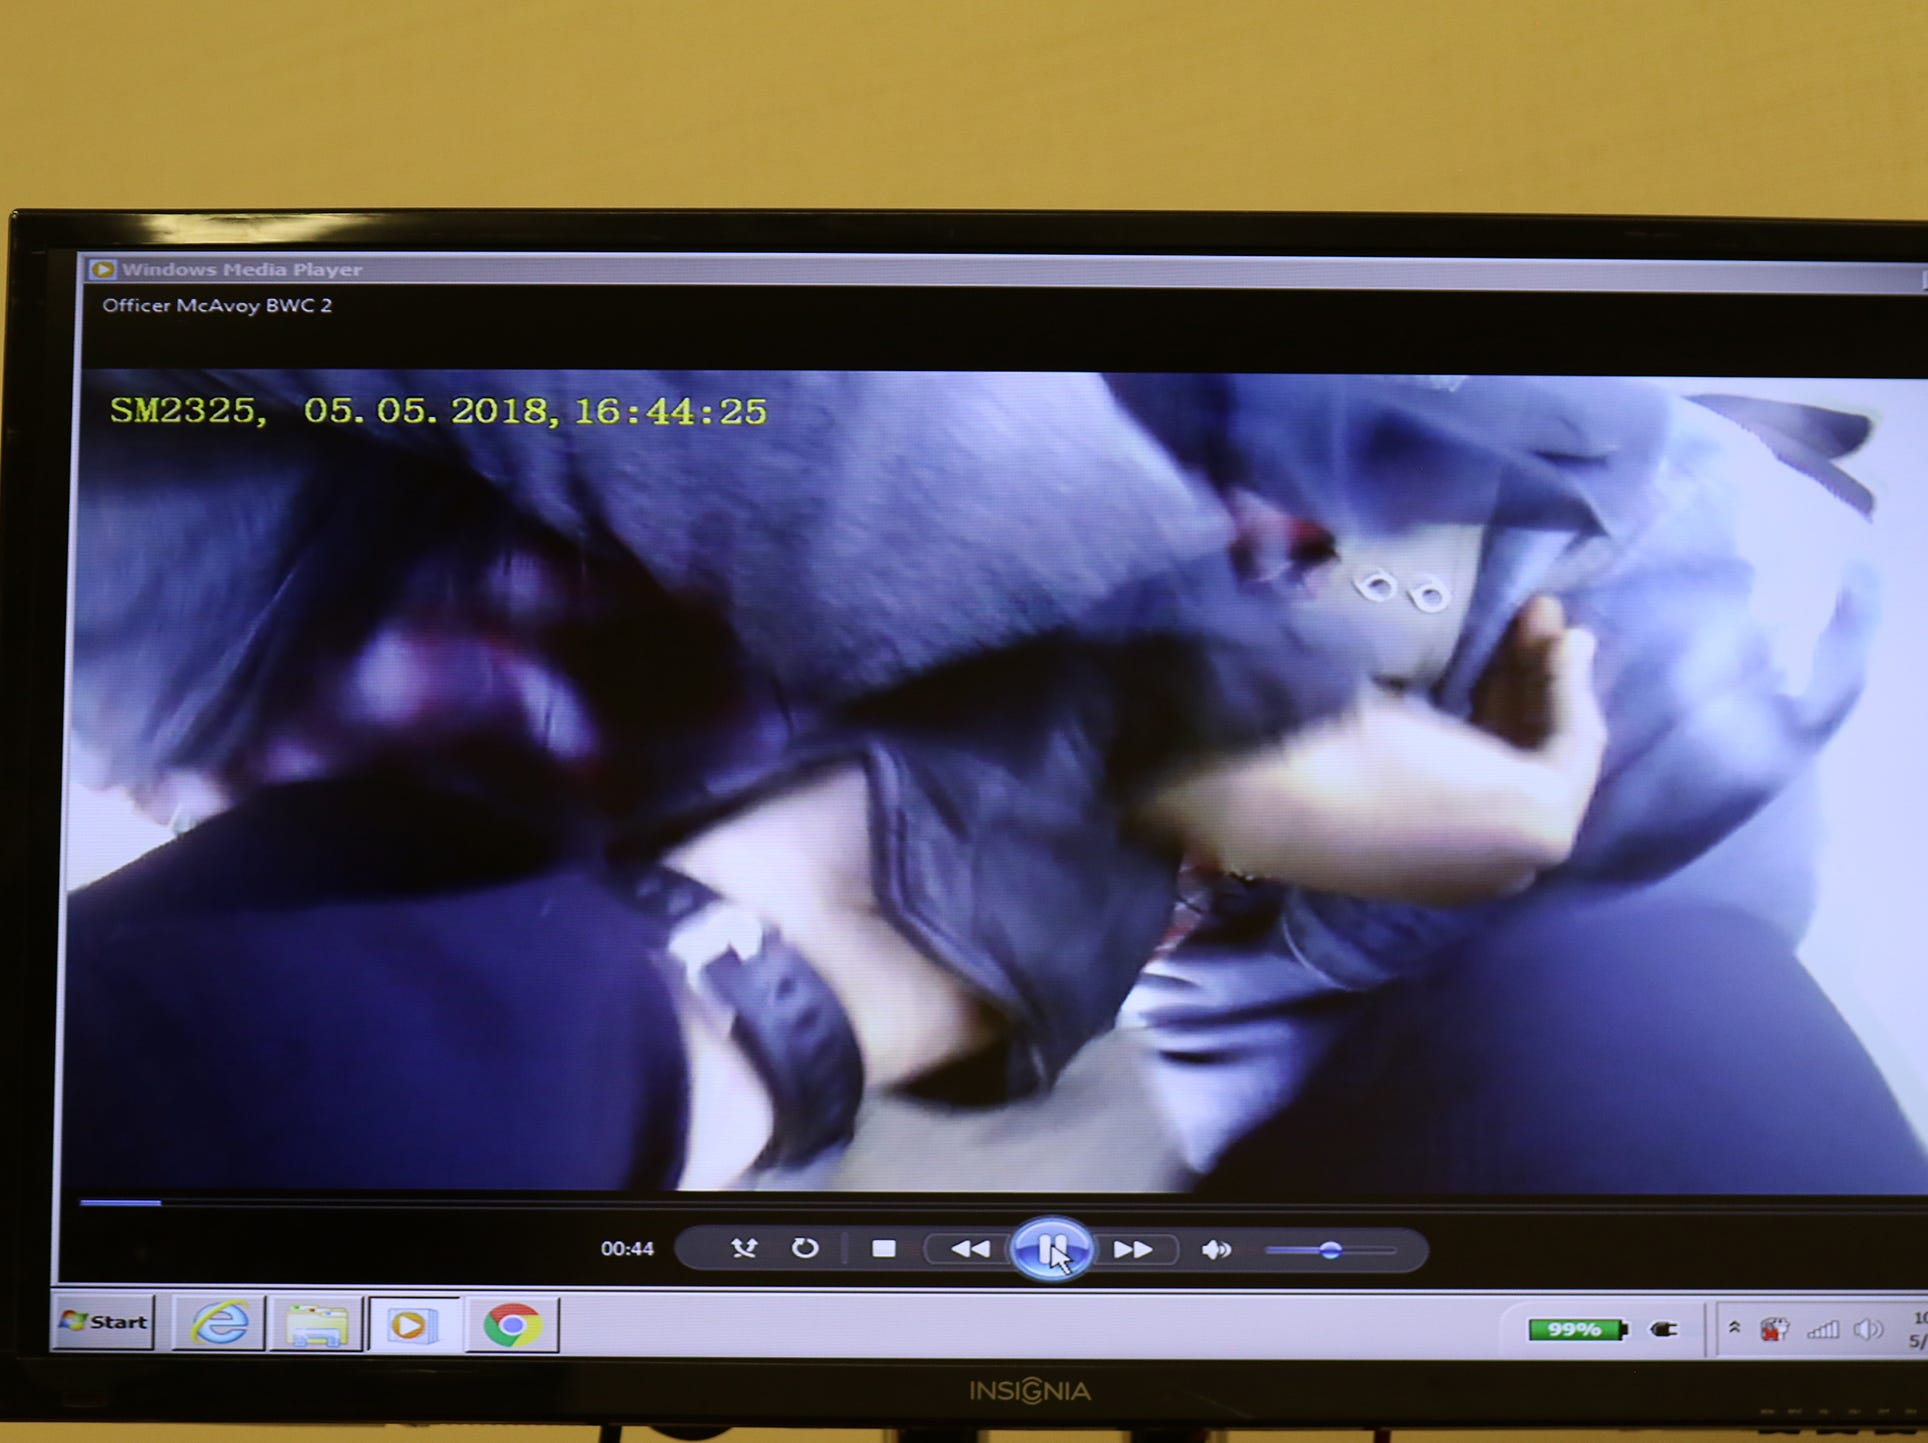 A screengrab of body camera video showing one of the police officers grabbing a hold of Christopher Pate's wrist.